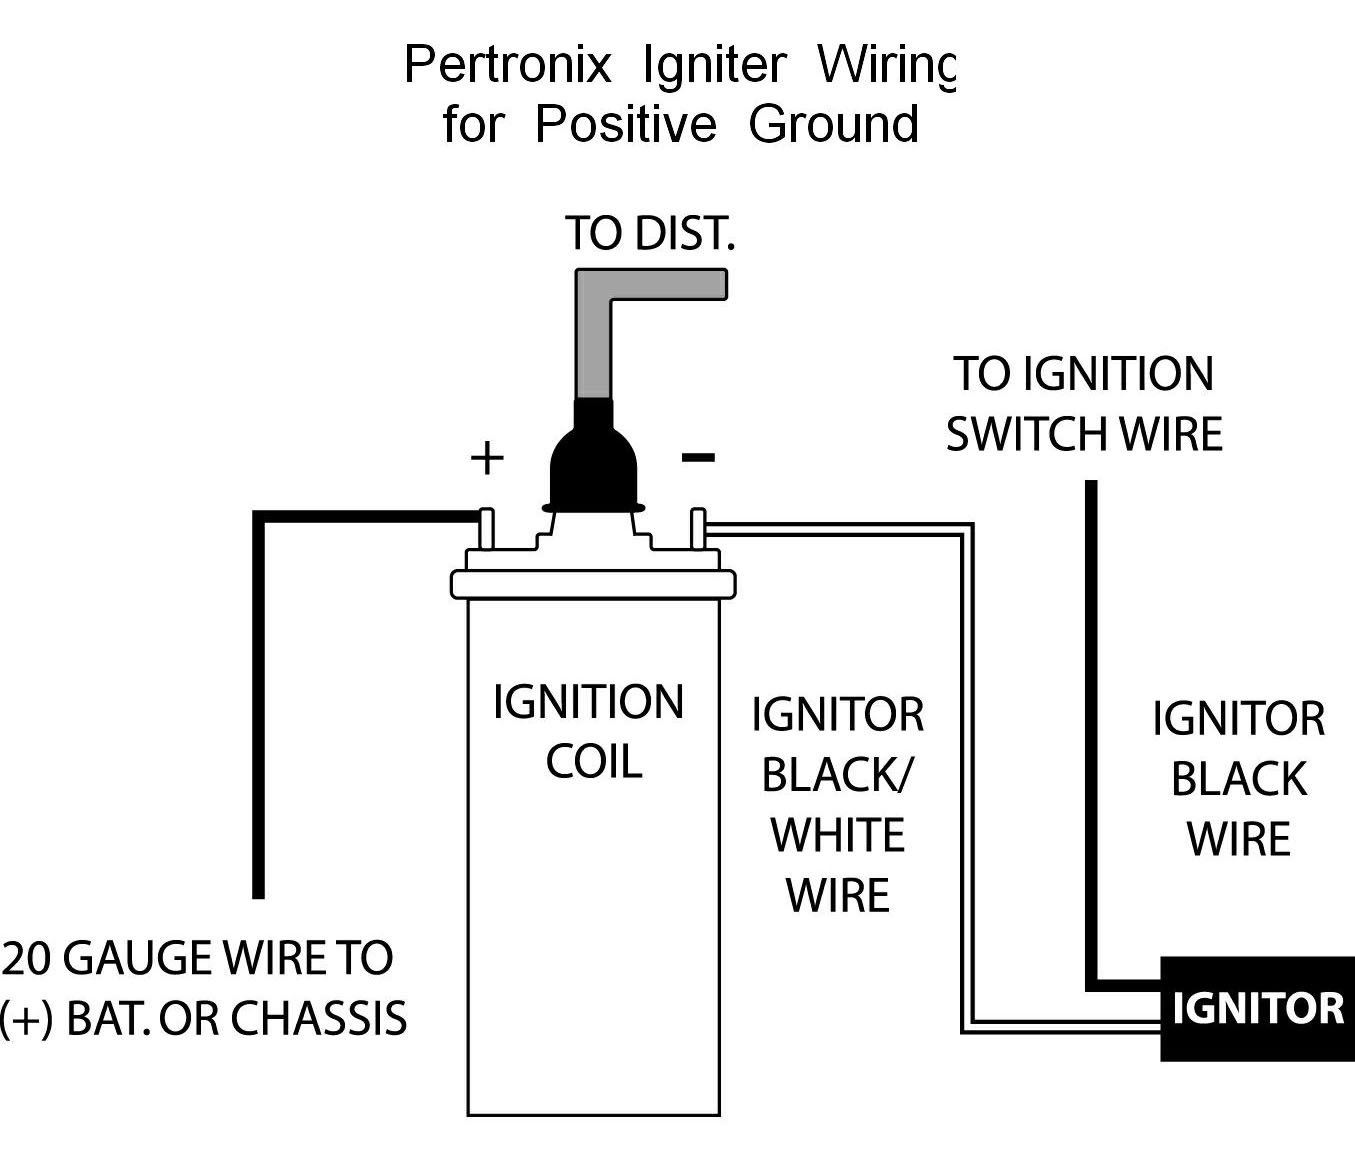 PerPosGndWiring pertronix positive ground wiring 6 volt coil wiring diagram at soozxer.org